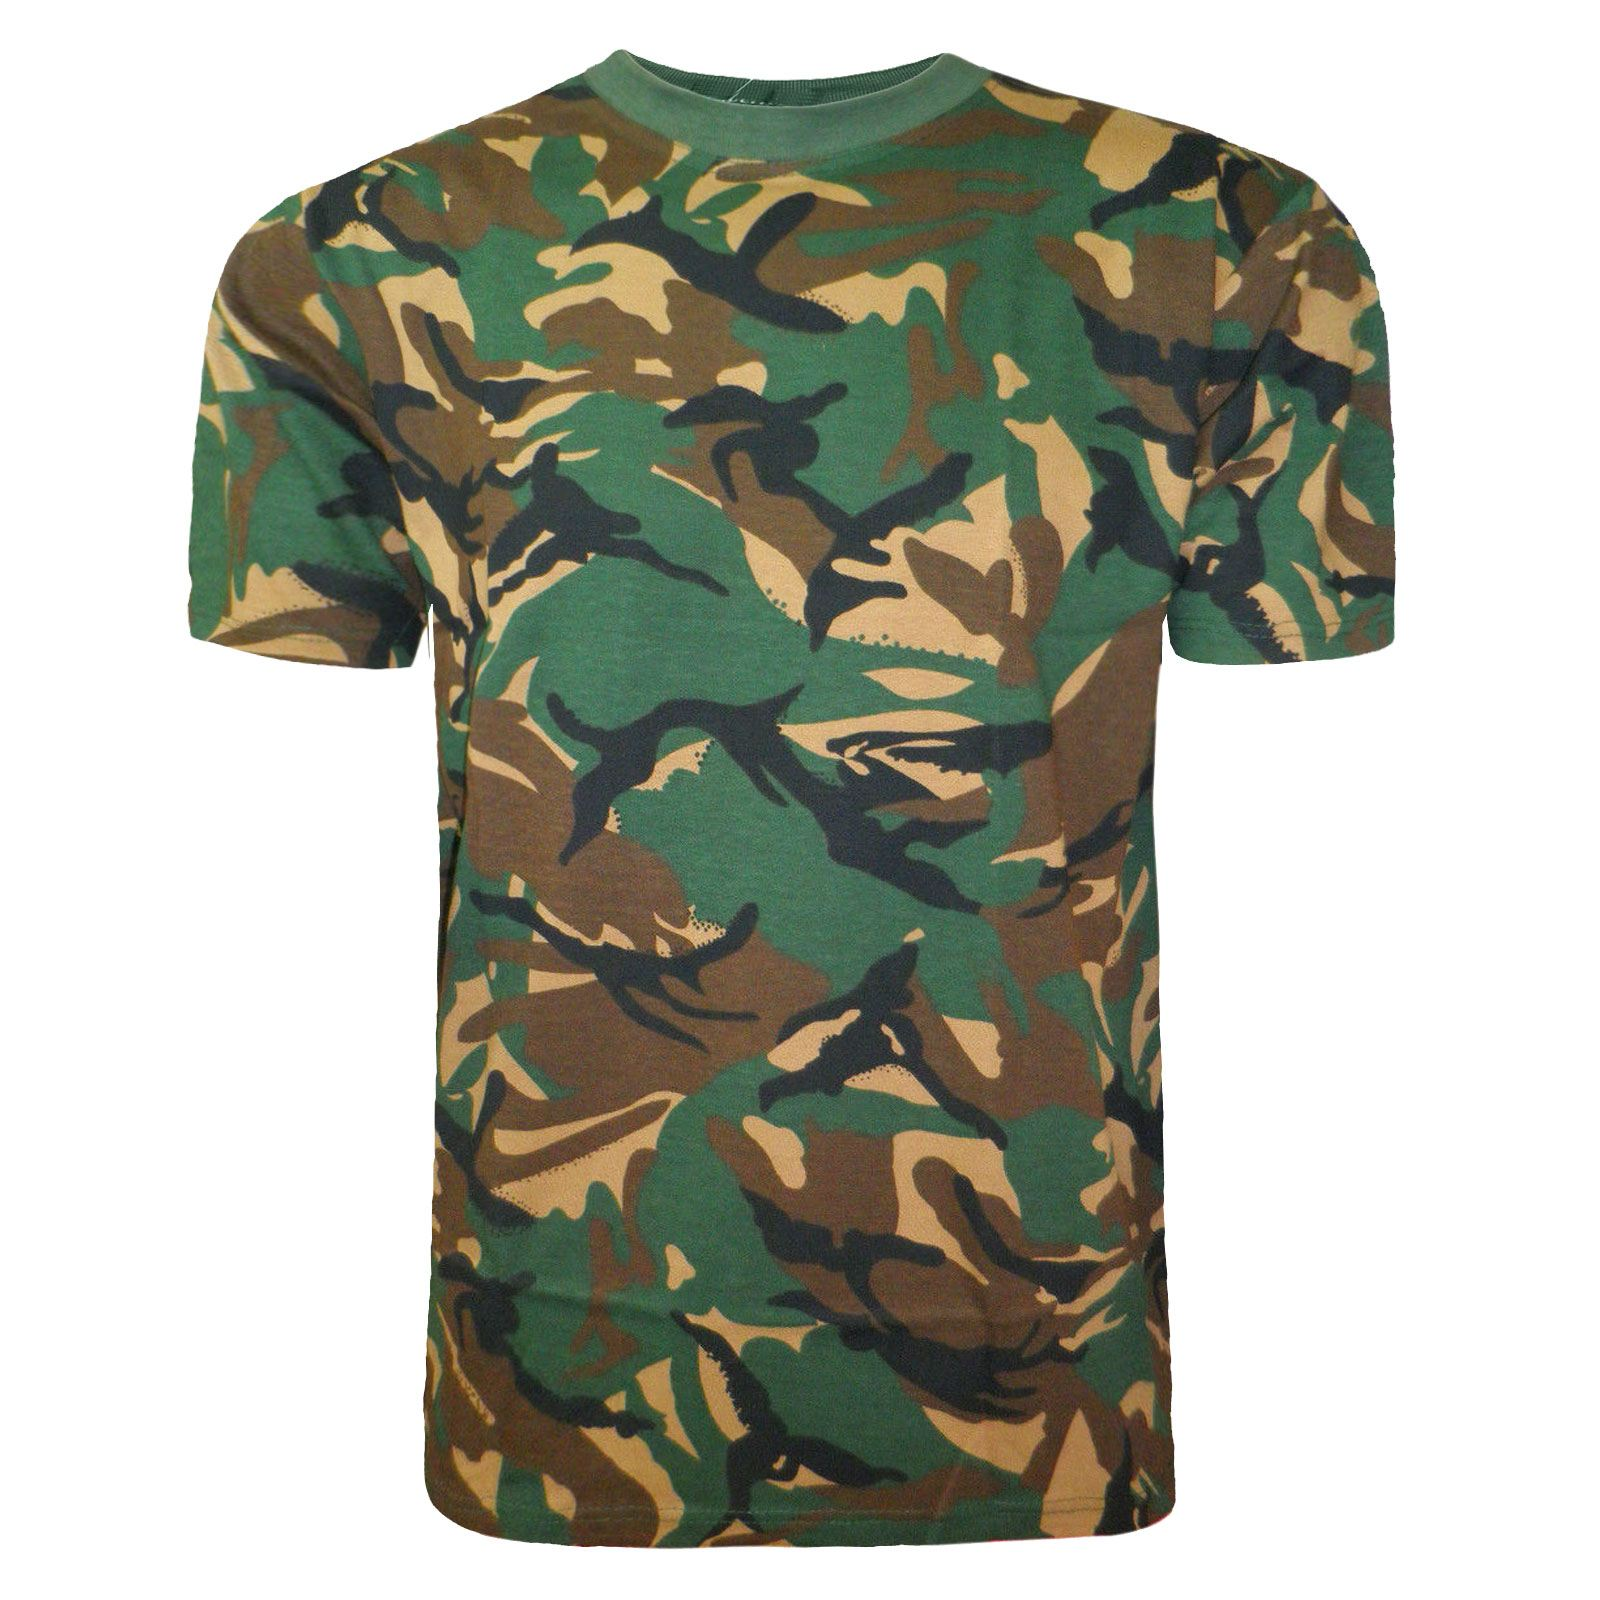 Shop for camo shirt toddler online at Target. Free shipping on purchases over $35 and save 5% every day with your Target REDcard.